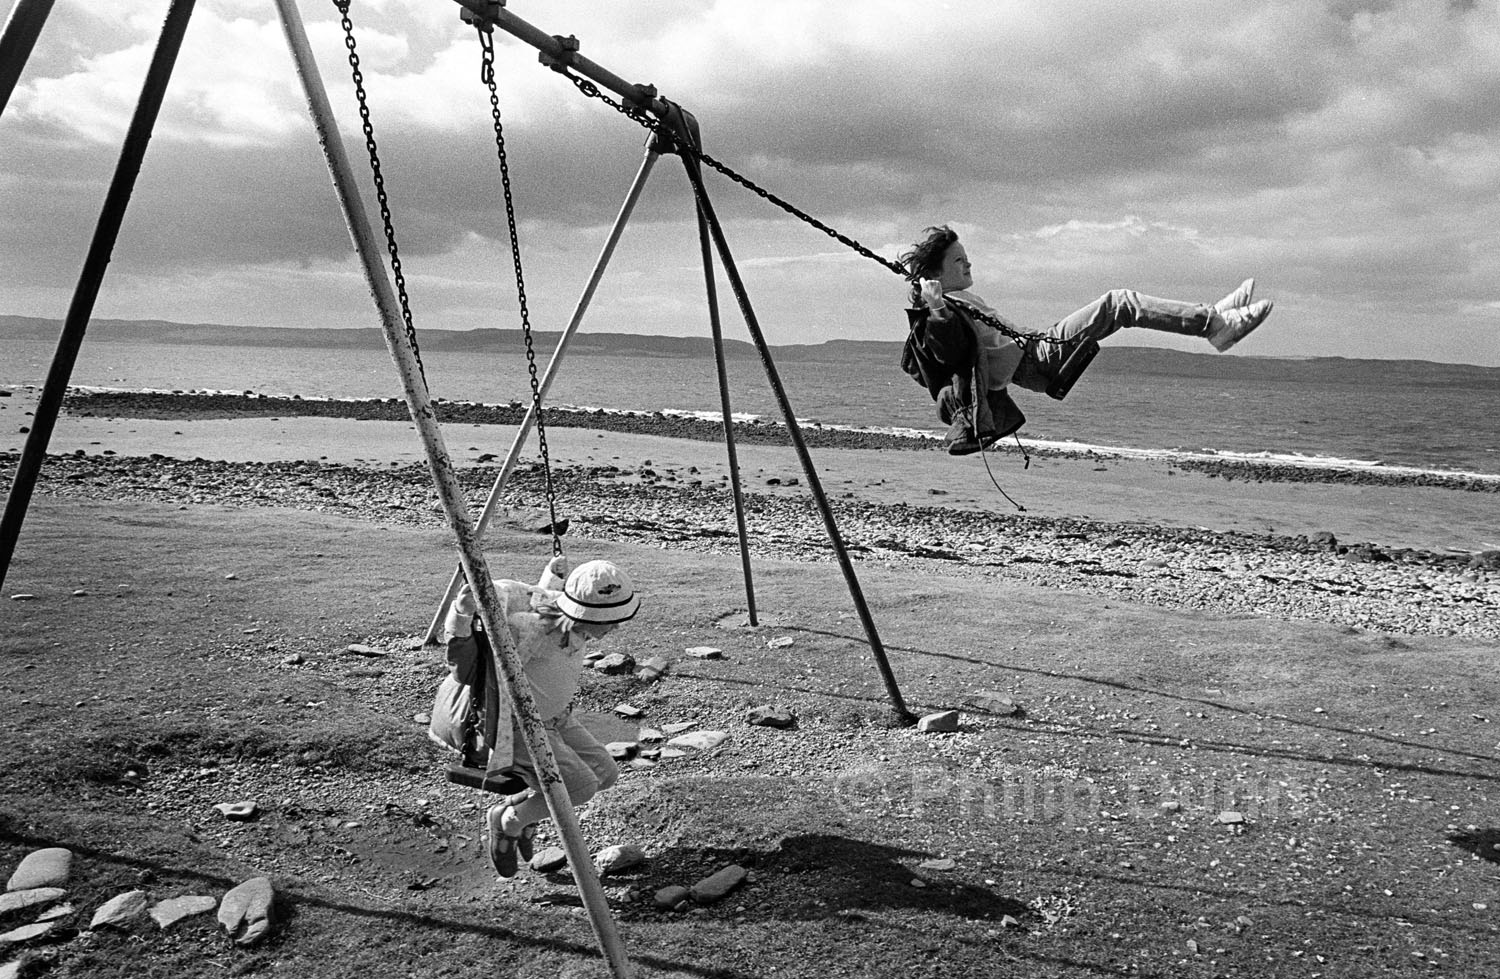 two girls on swing on Arran, Scotland. One girl swing high in the air